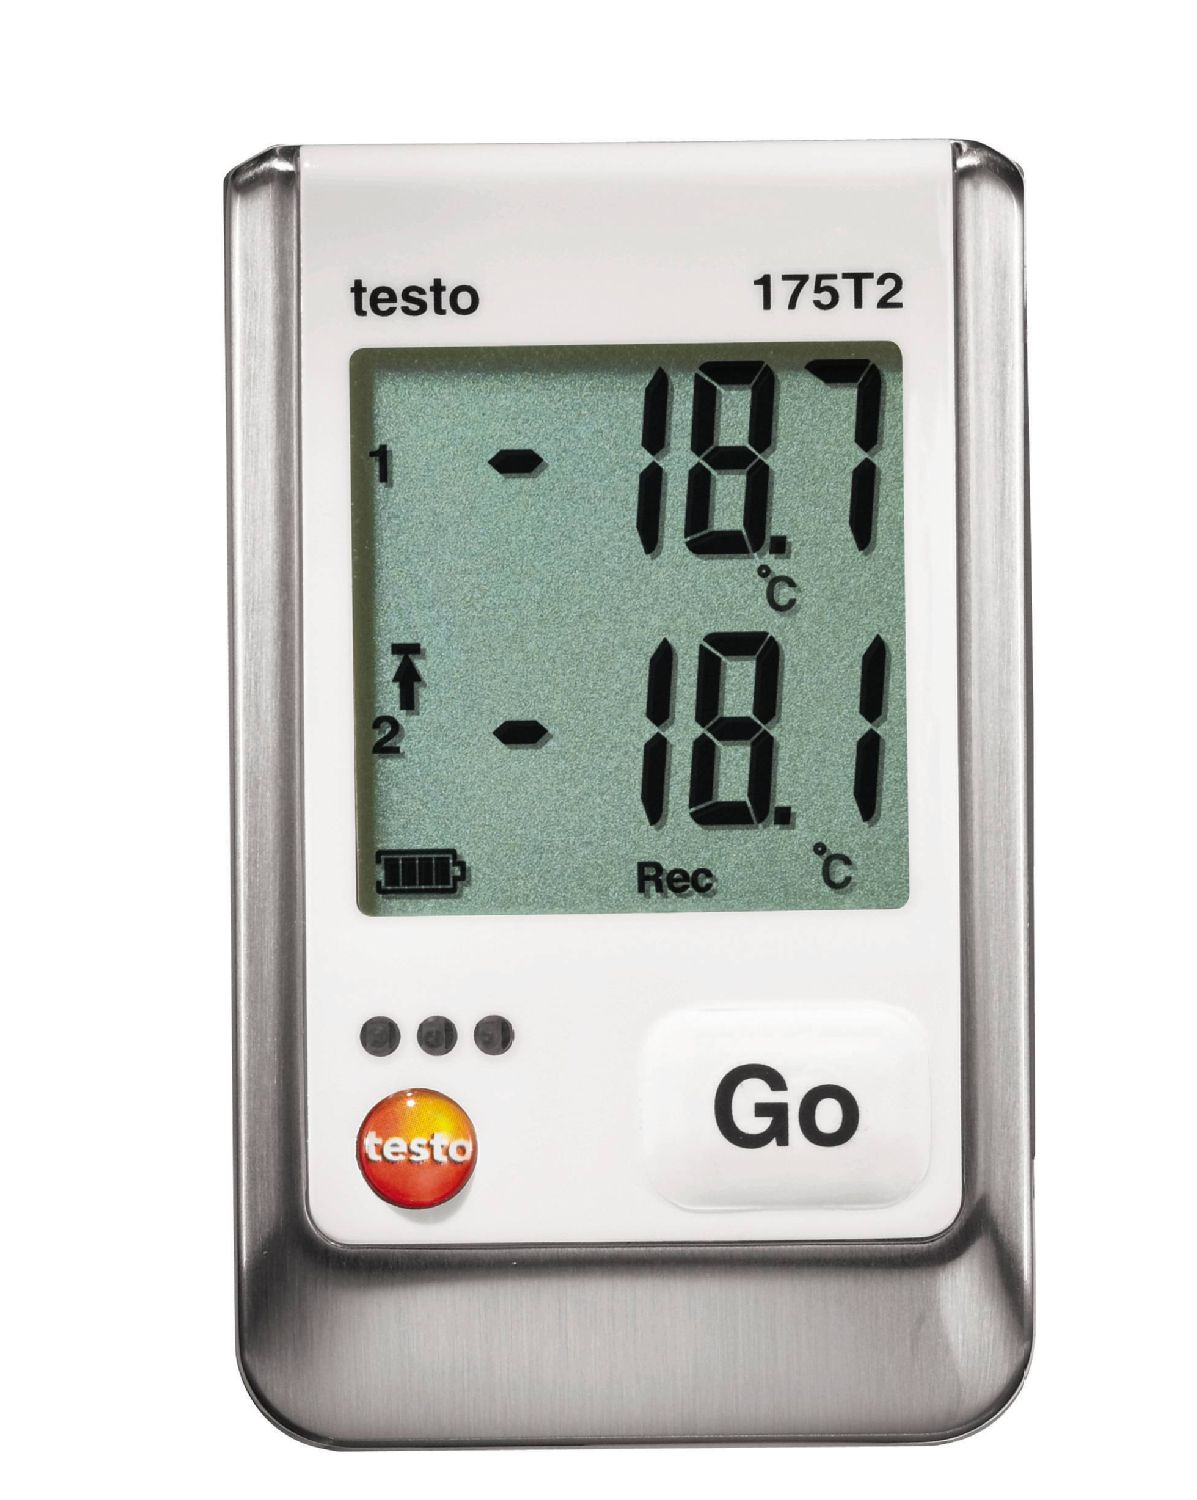 testo-175T2-instrument-temperature-001858.jpg